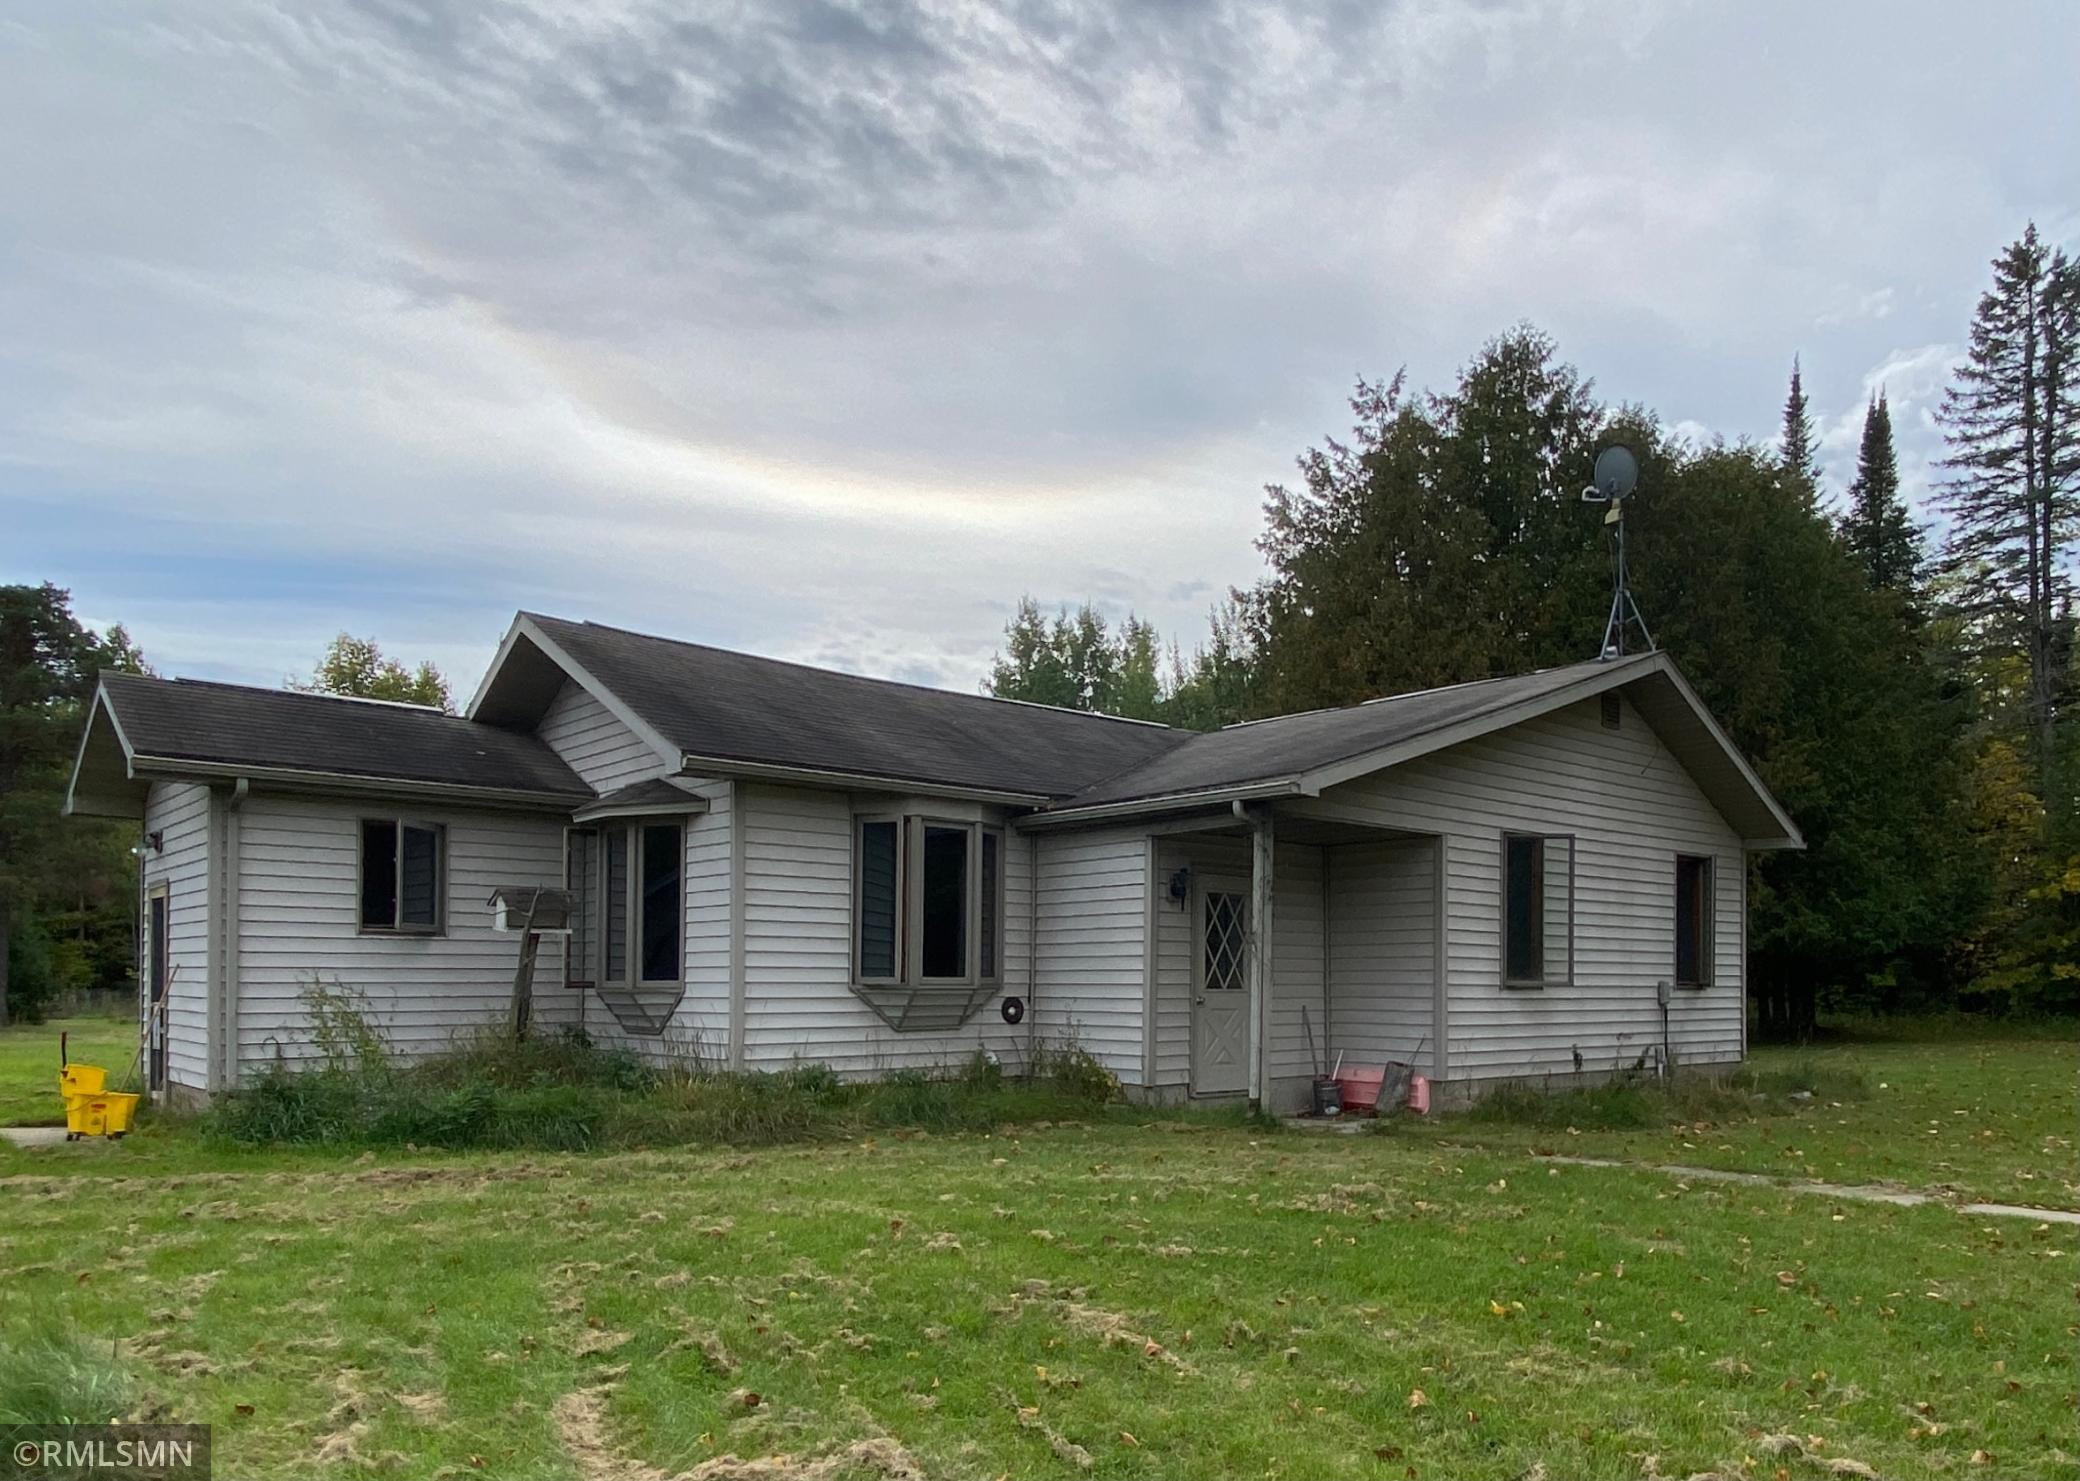 46493 County Road 4, Talmoon, MN 56637